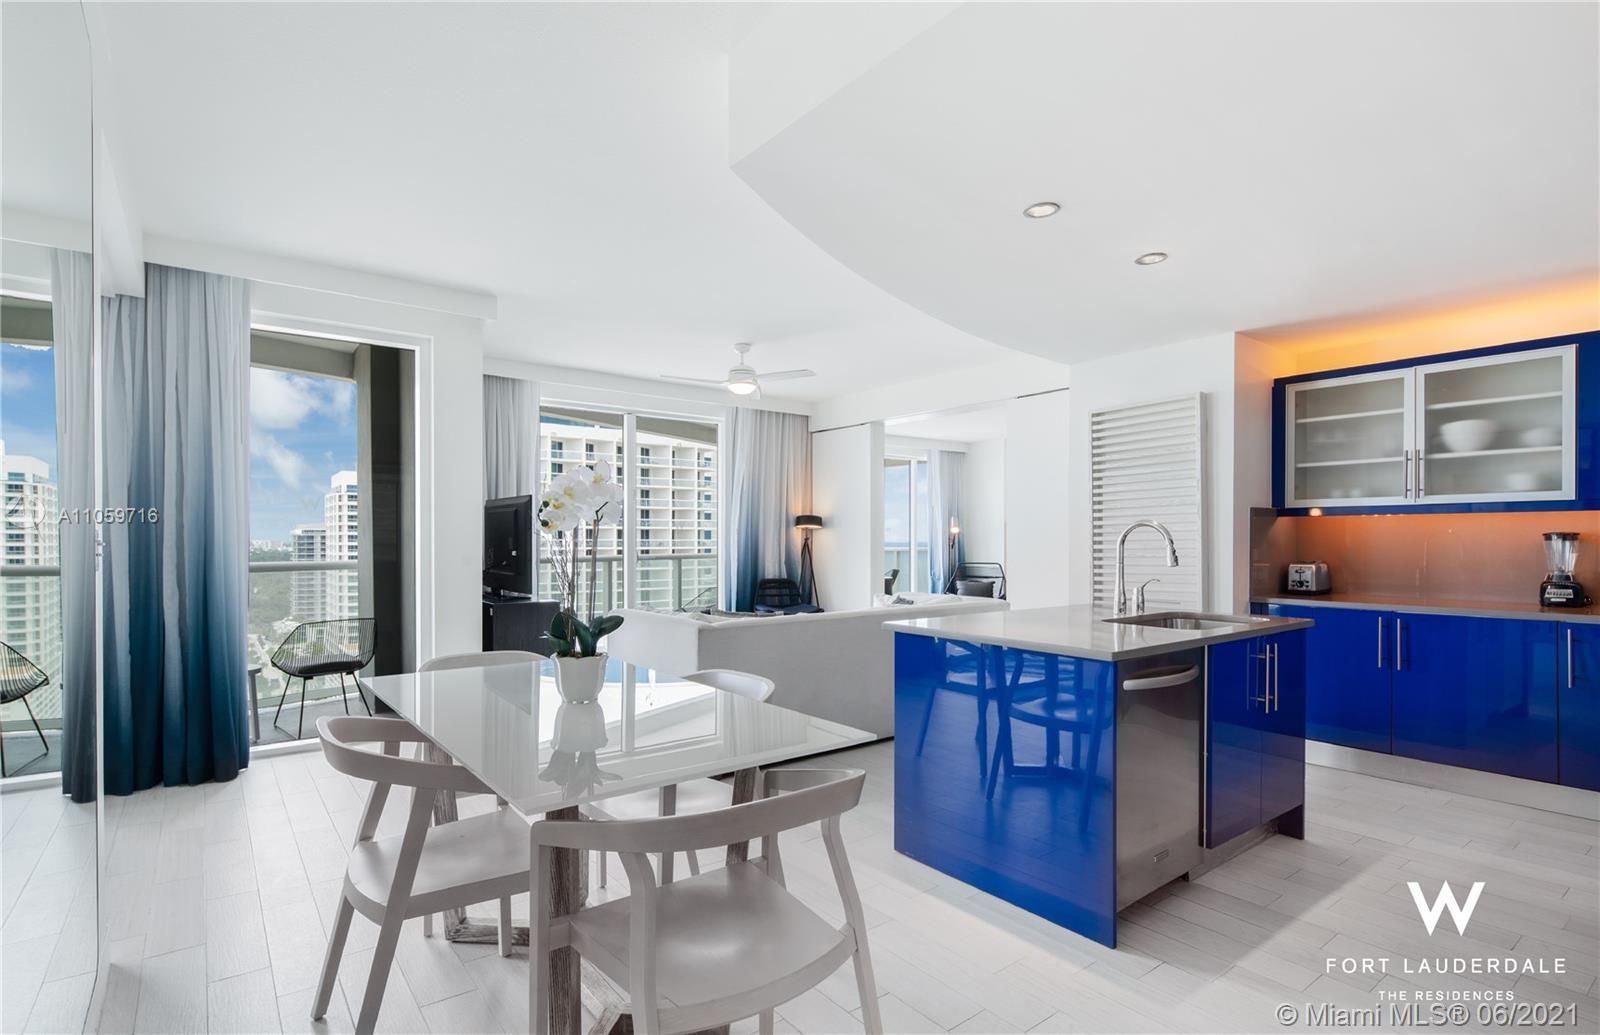 Fully furnished, 2-bedroom/2-bathroom residence offers Northern Intracoastal/city views and partial